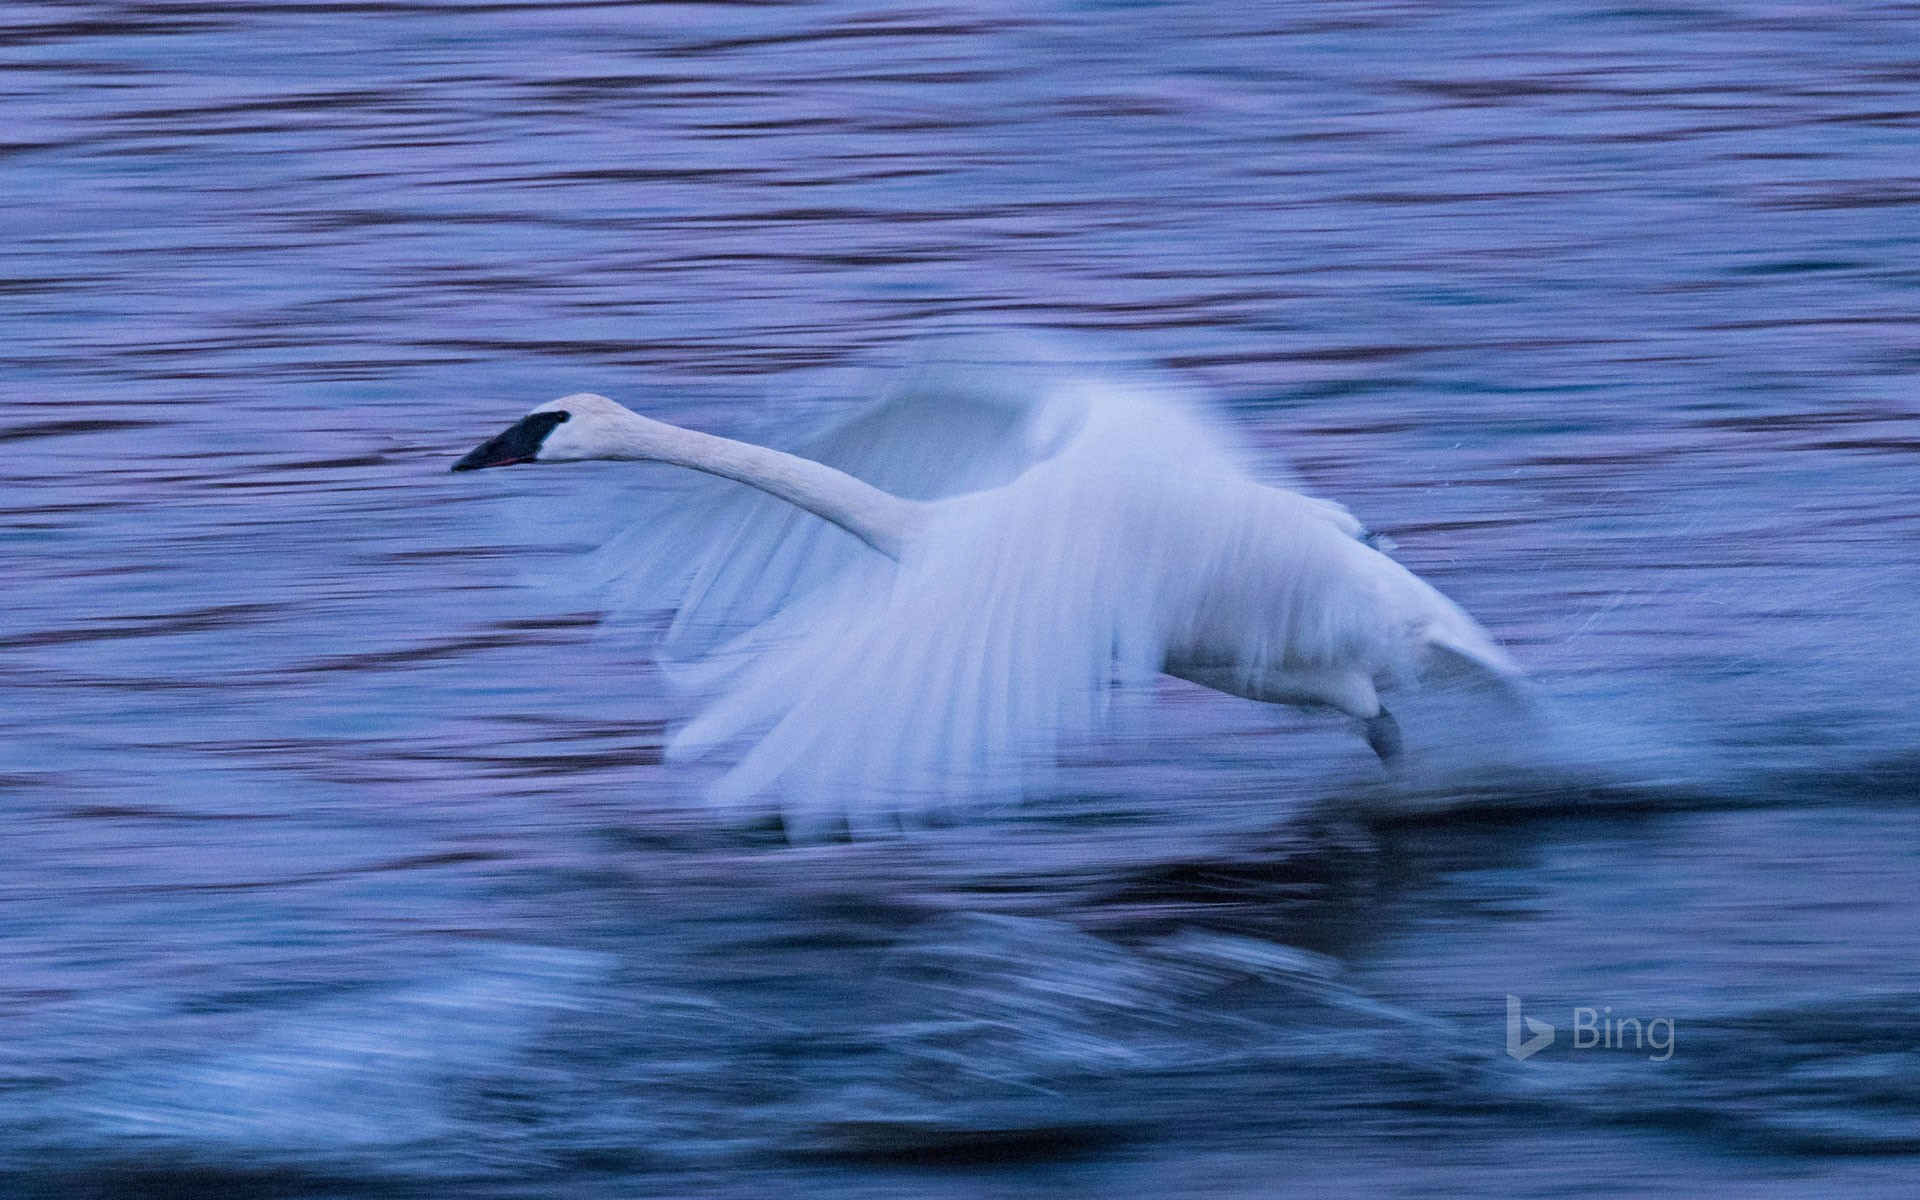 A tundra swan on the Mississippi River in Monticello, Minnesota, USA